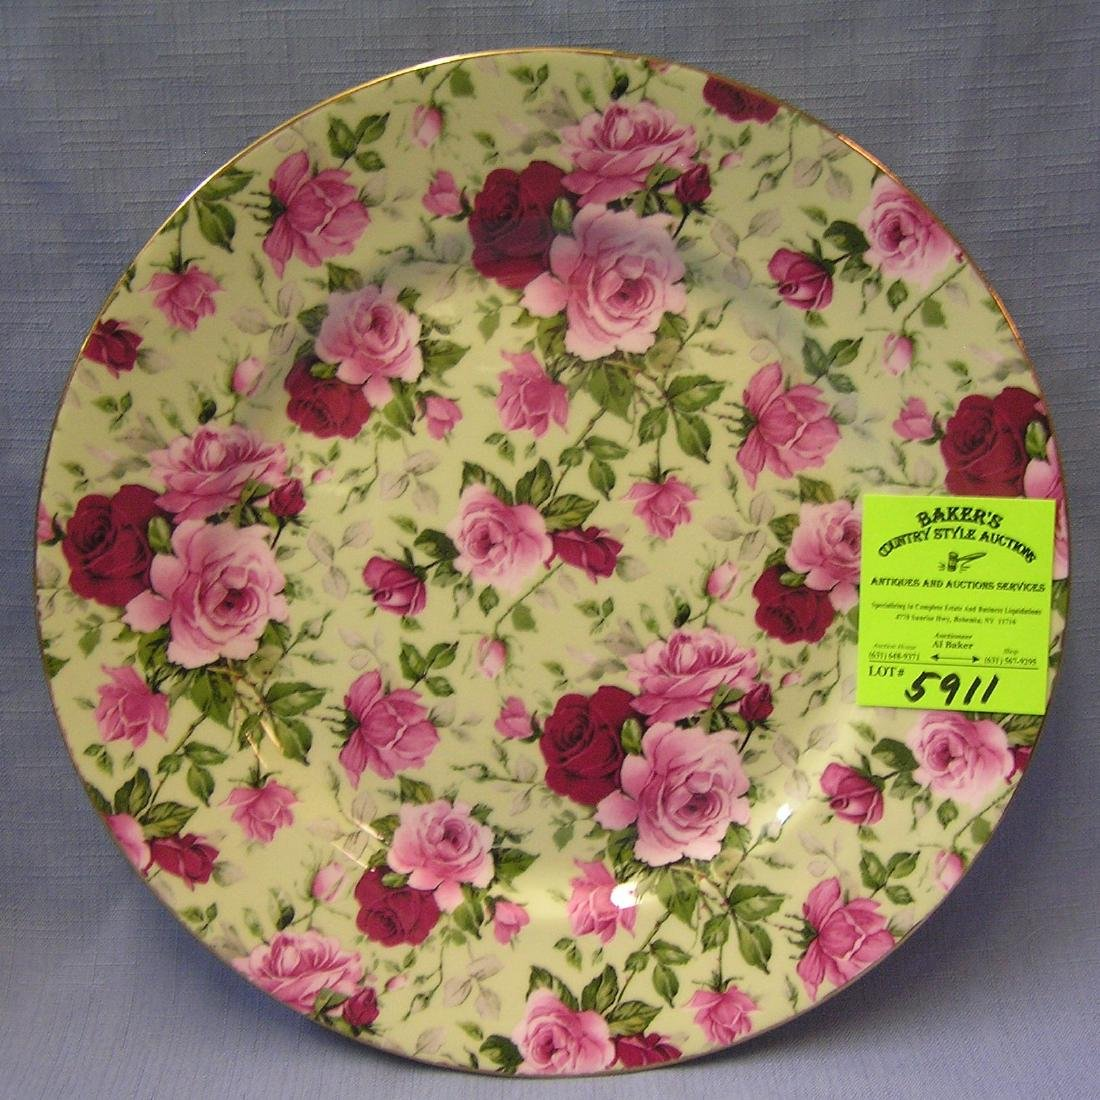 Nice floral decorated platter